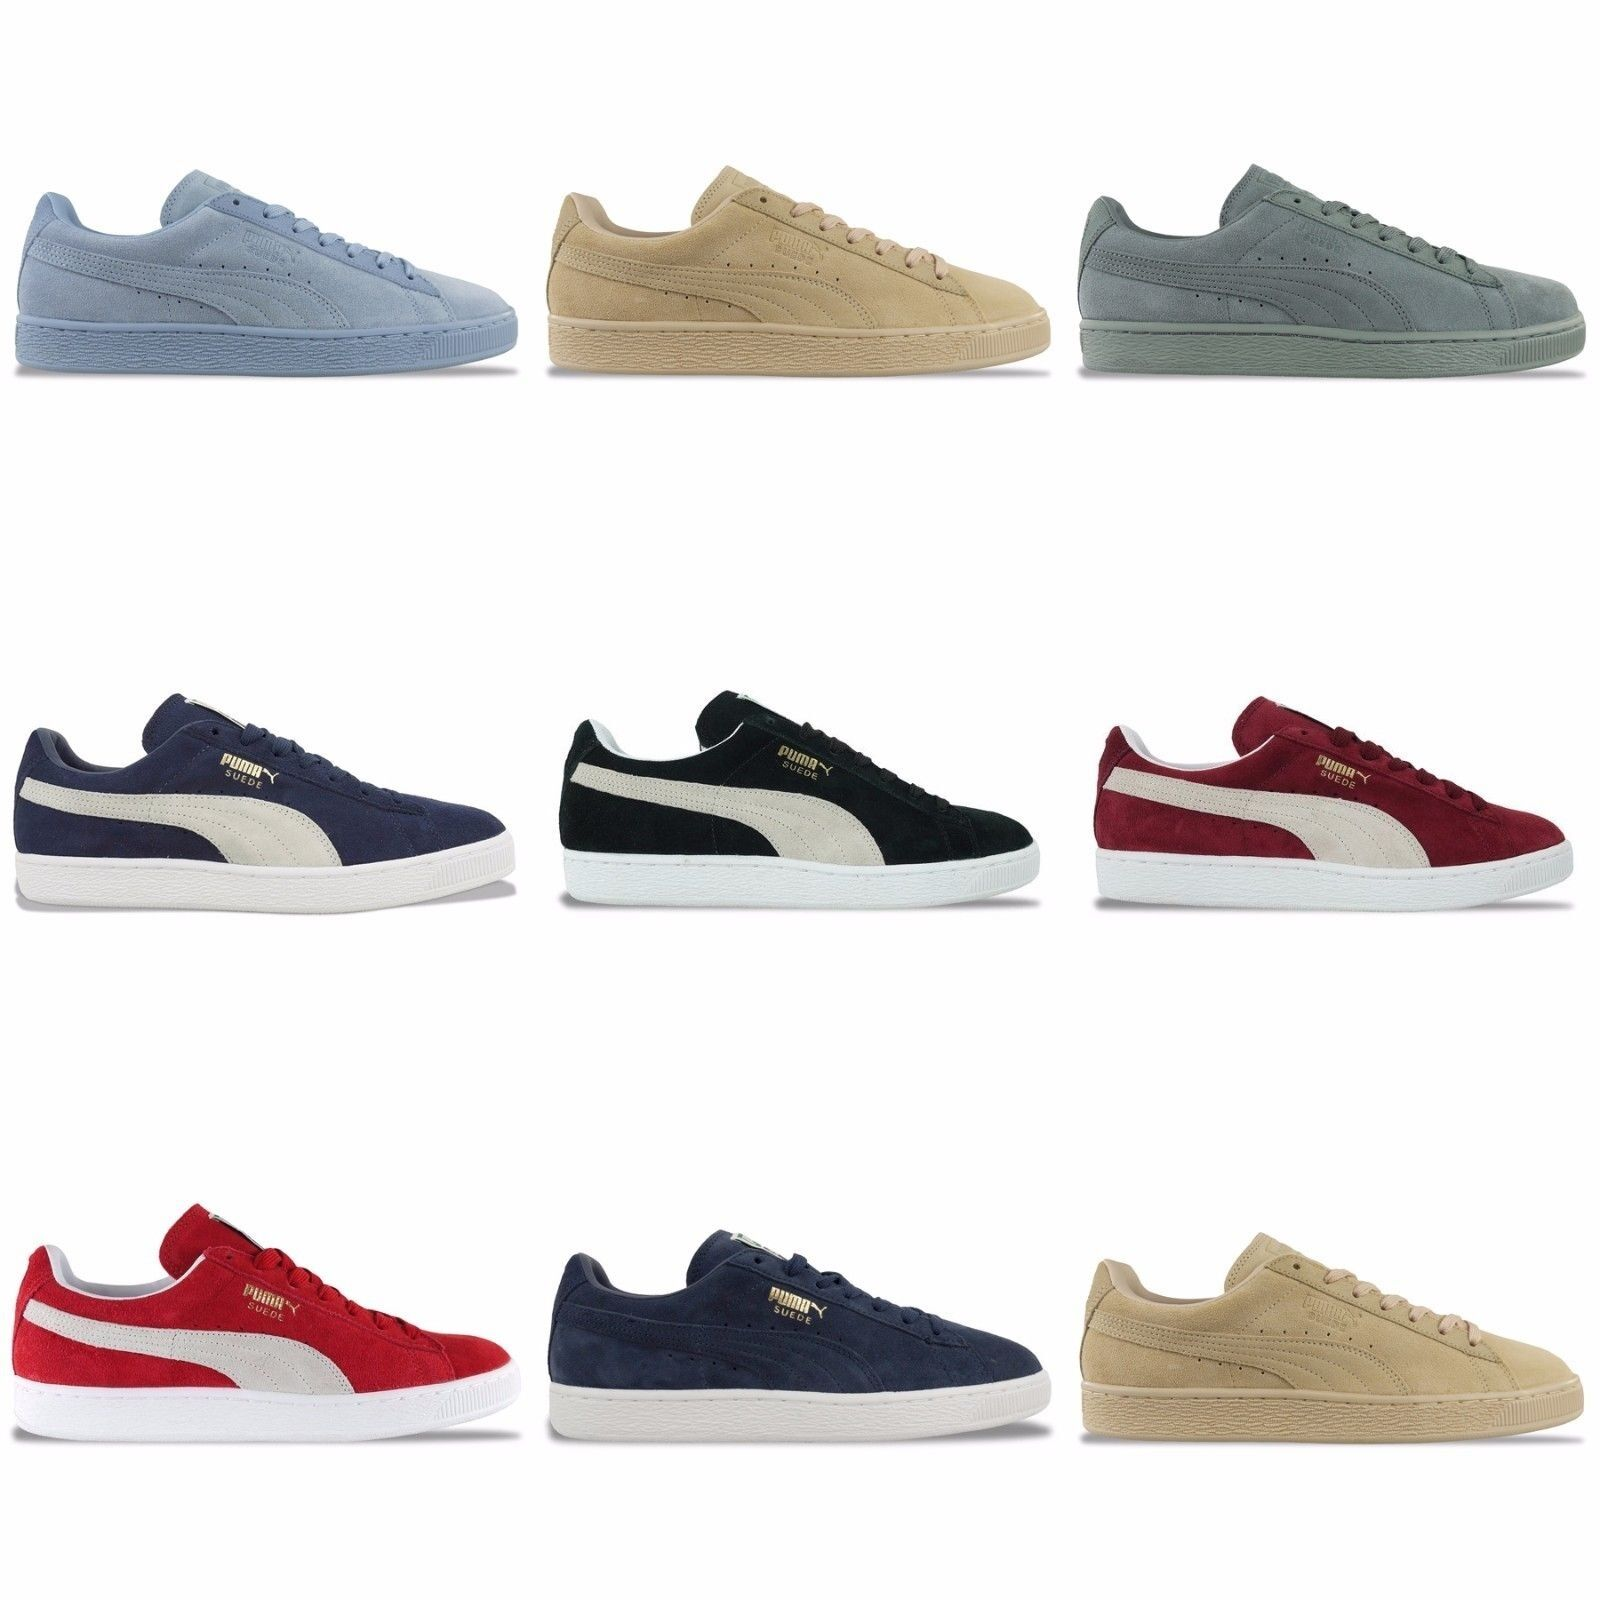 PUMA SUEDE CLASSIC TRAINERS - Noir , BURGUNDY, bleu FOG, rouge AND MANY MORE